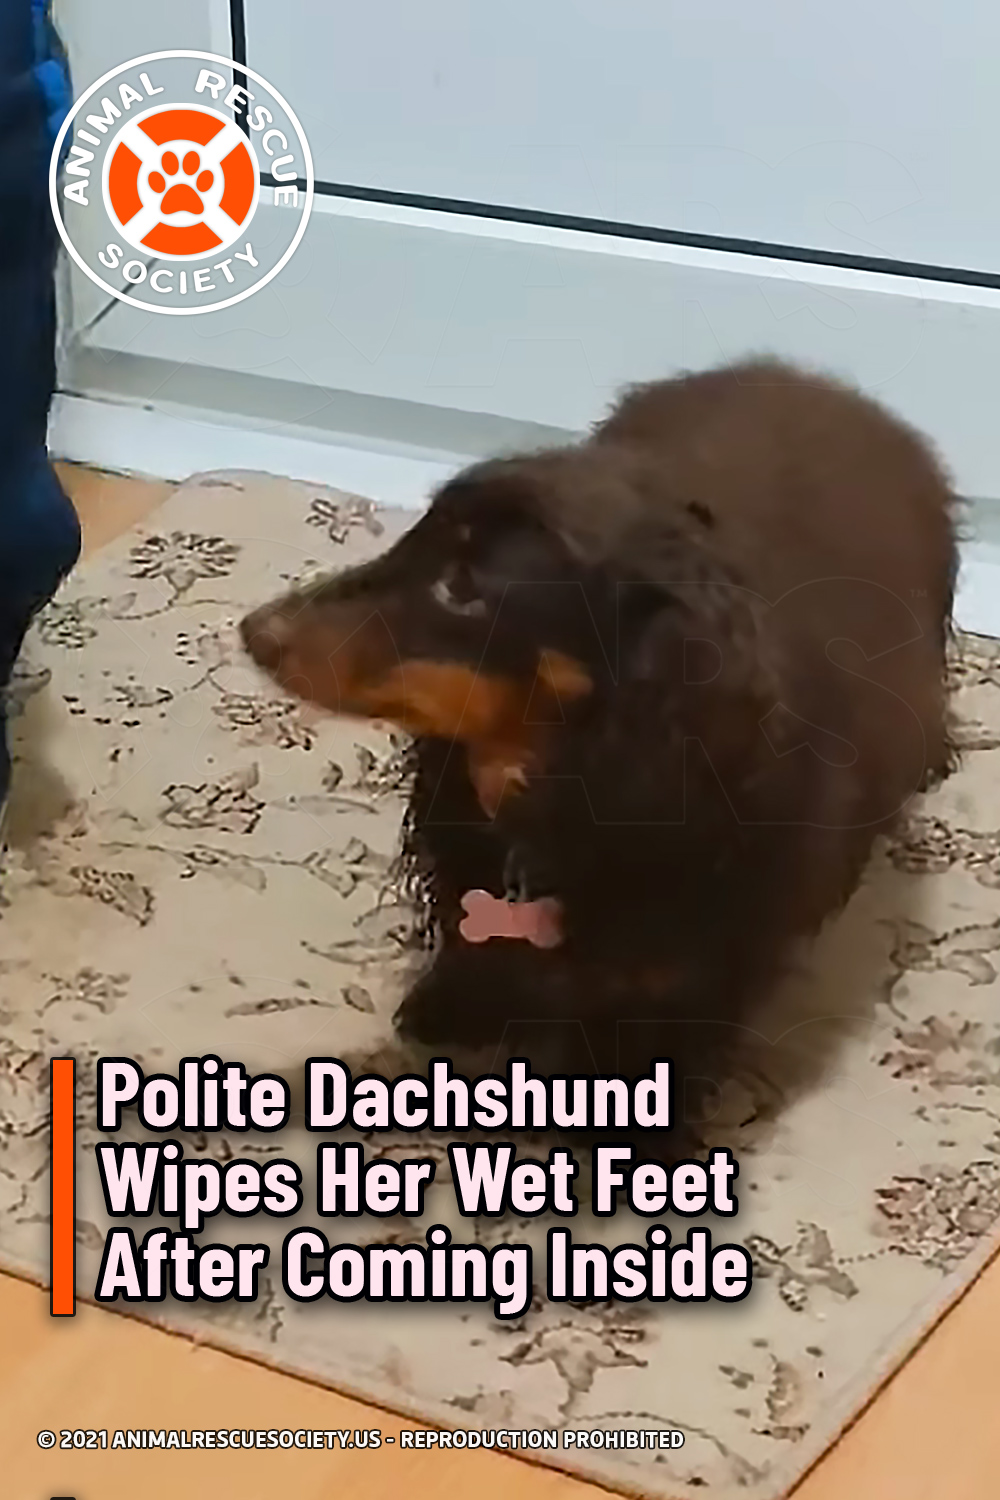 Polite Dachshund Wipes Her Wet Feet After Coming Inside